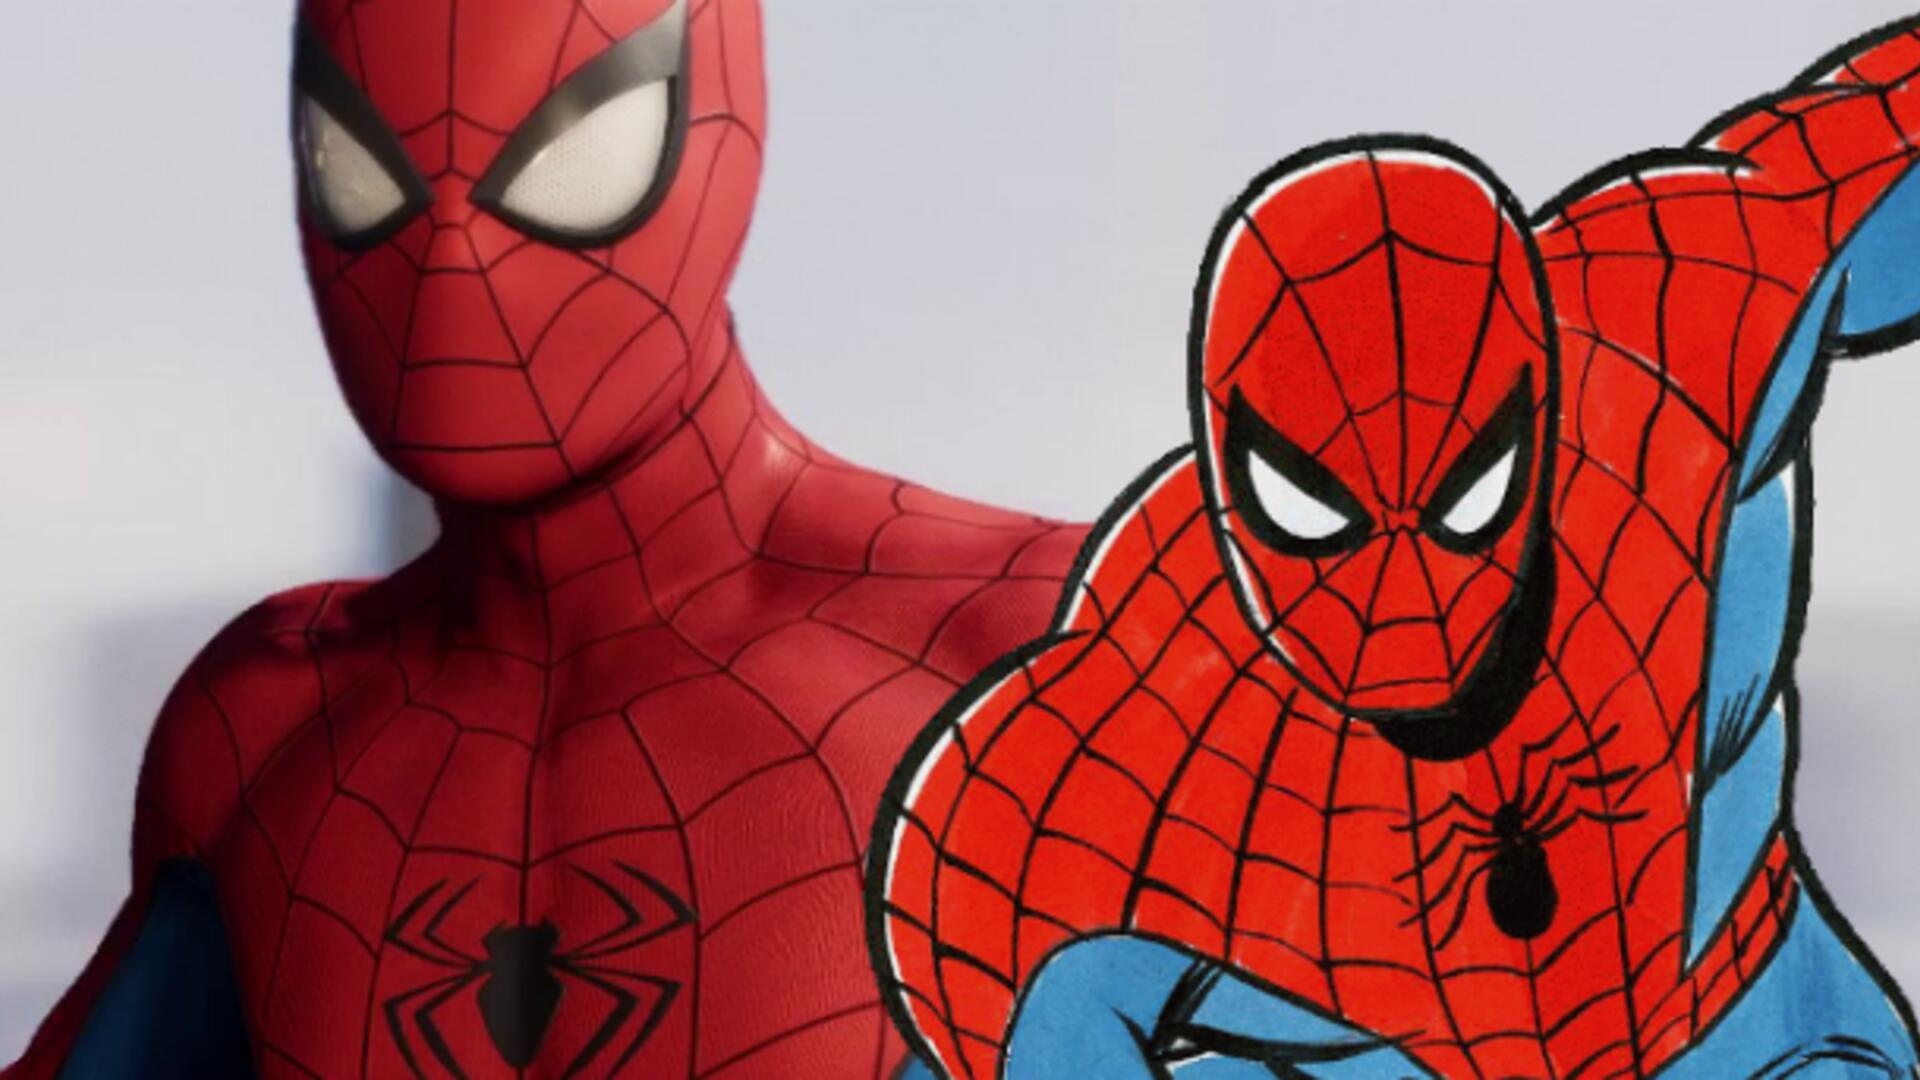 Spider-Man PS4's Cast of Characters - Their Comic Origins